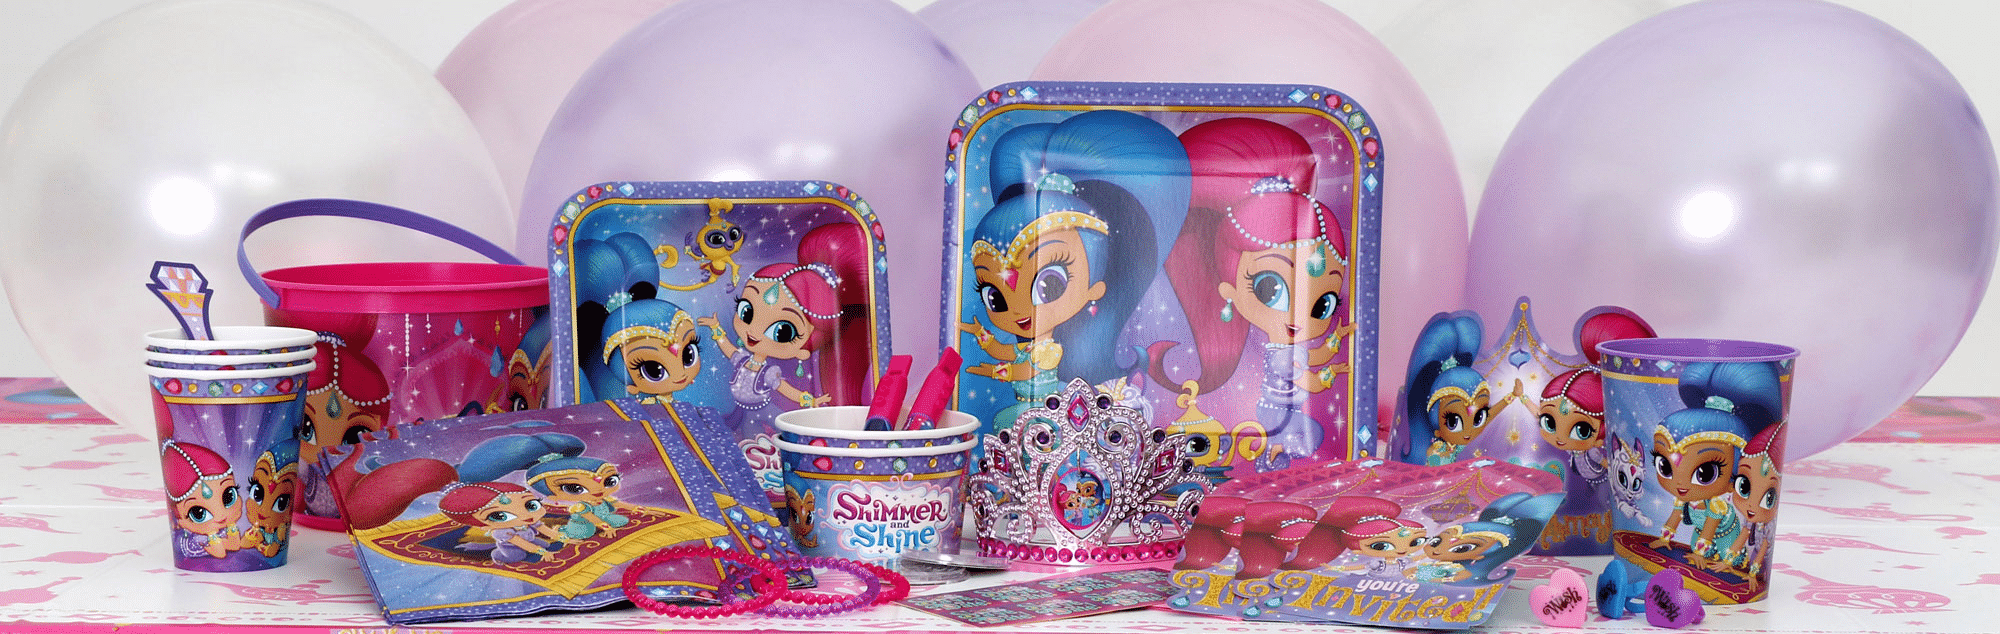 Shimmer Shine Themed Party Supplies Decorations Balloons Next Day